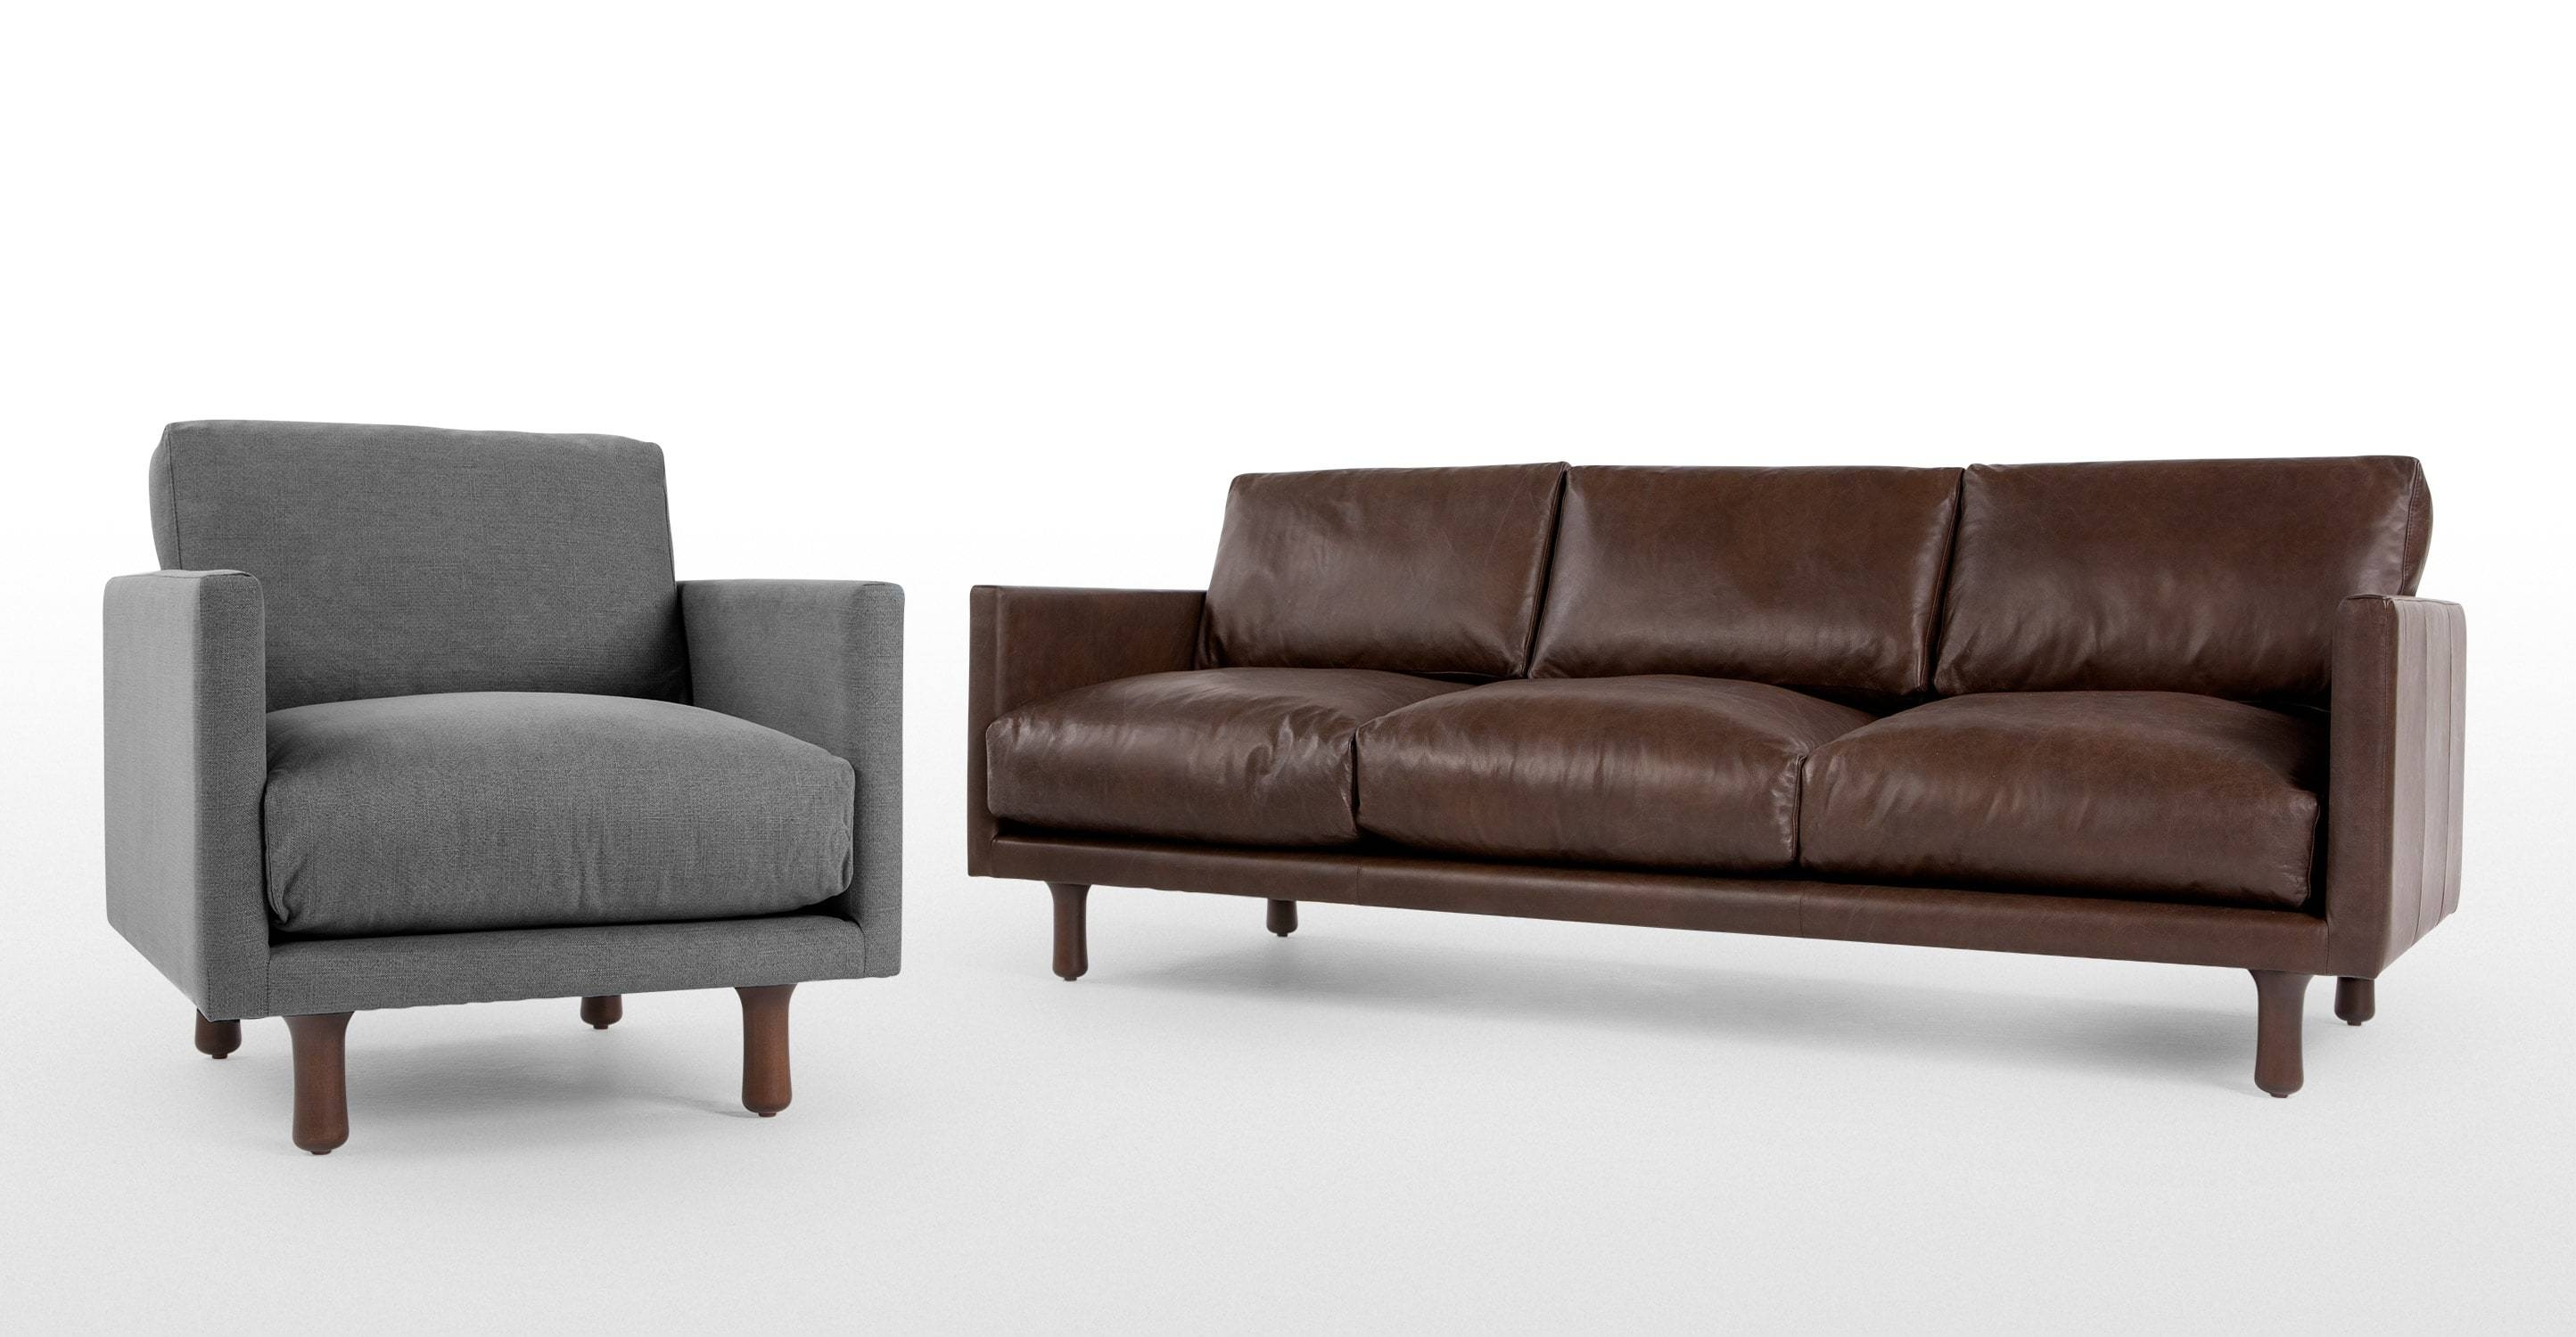 Carey Seater Sofa Vintage Brown Premium Leather Made Com Room Beds inside Vintage Leather Sofa Beds (Image 7 of 30)